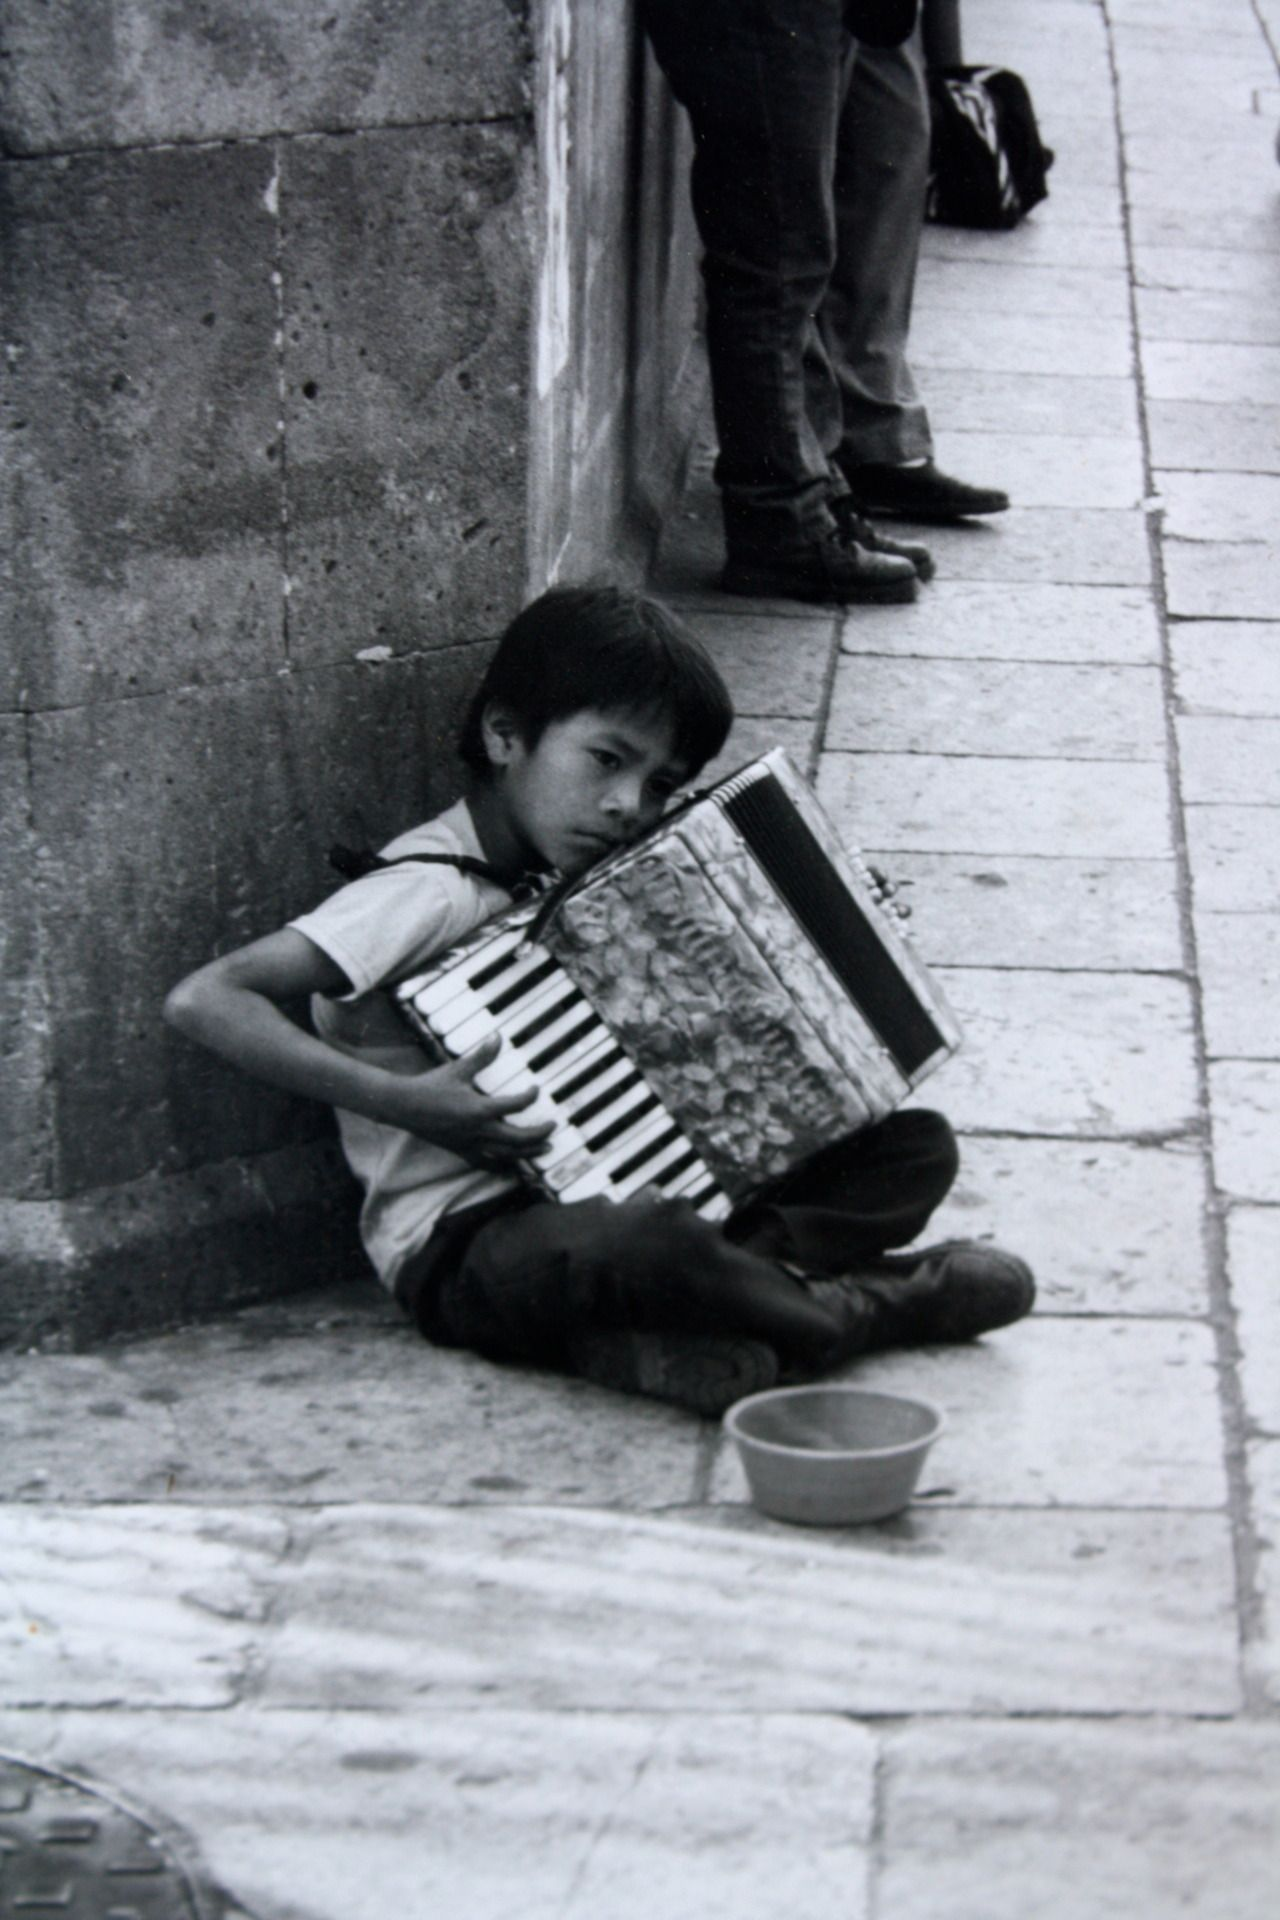 Science Fiction Essays On The Street   Child Beggar With Accordion  I Wanna Take Him Home  Pleaseee General Essay Topics In English also Example Of Thesis Statement For Argumentative Essay On The Street   Child Beggar With Accordion  I Wanna Take Him  Photosynthesis Essay